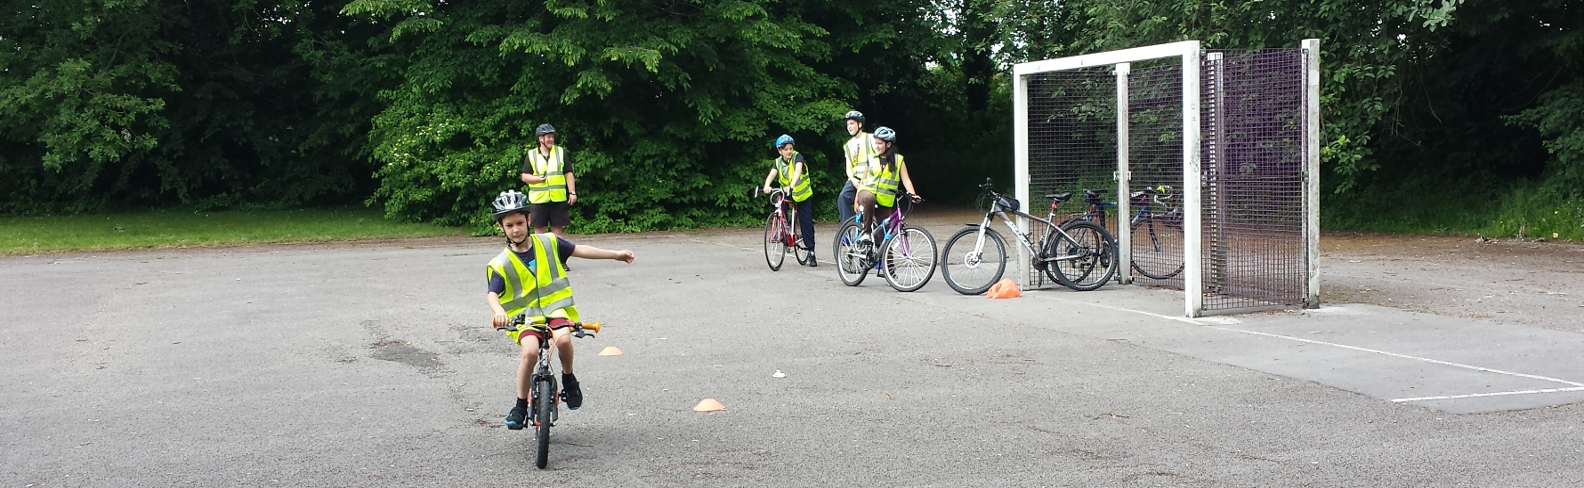 Bikeability Level 1 lessons